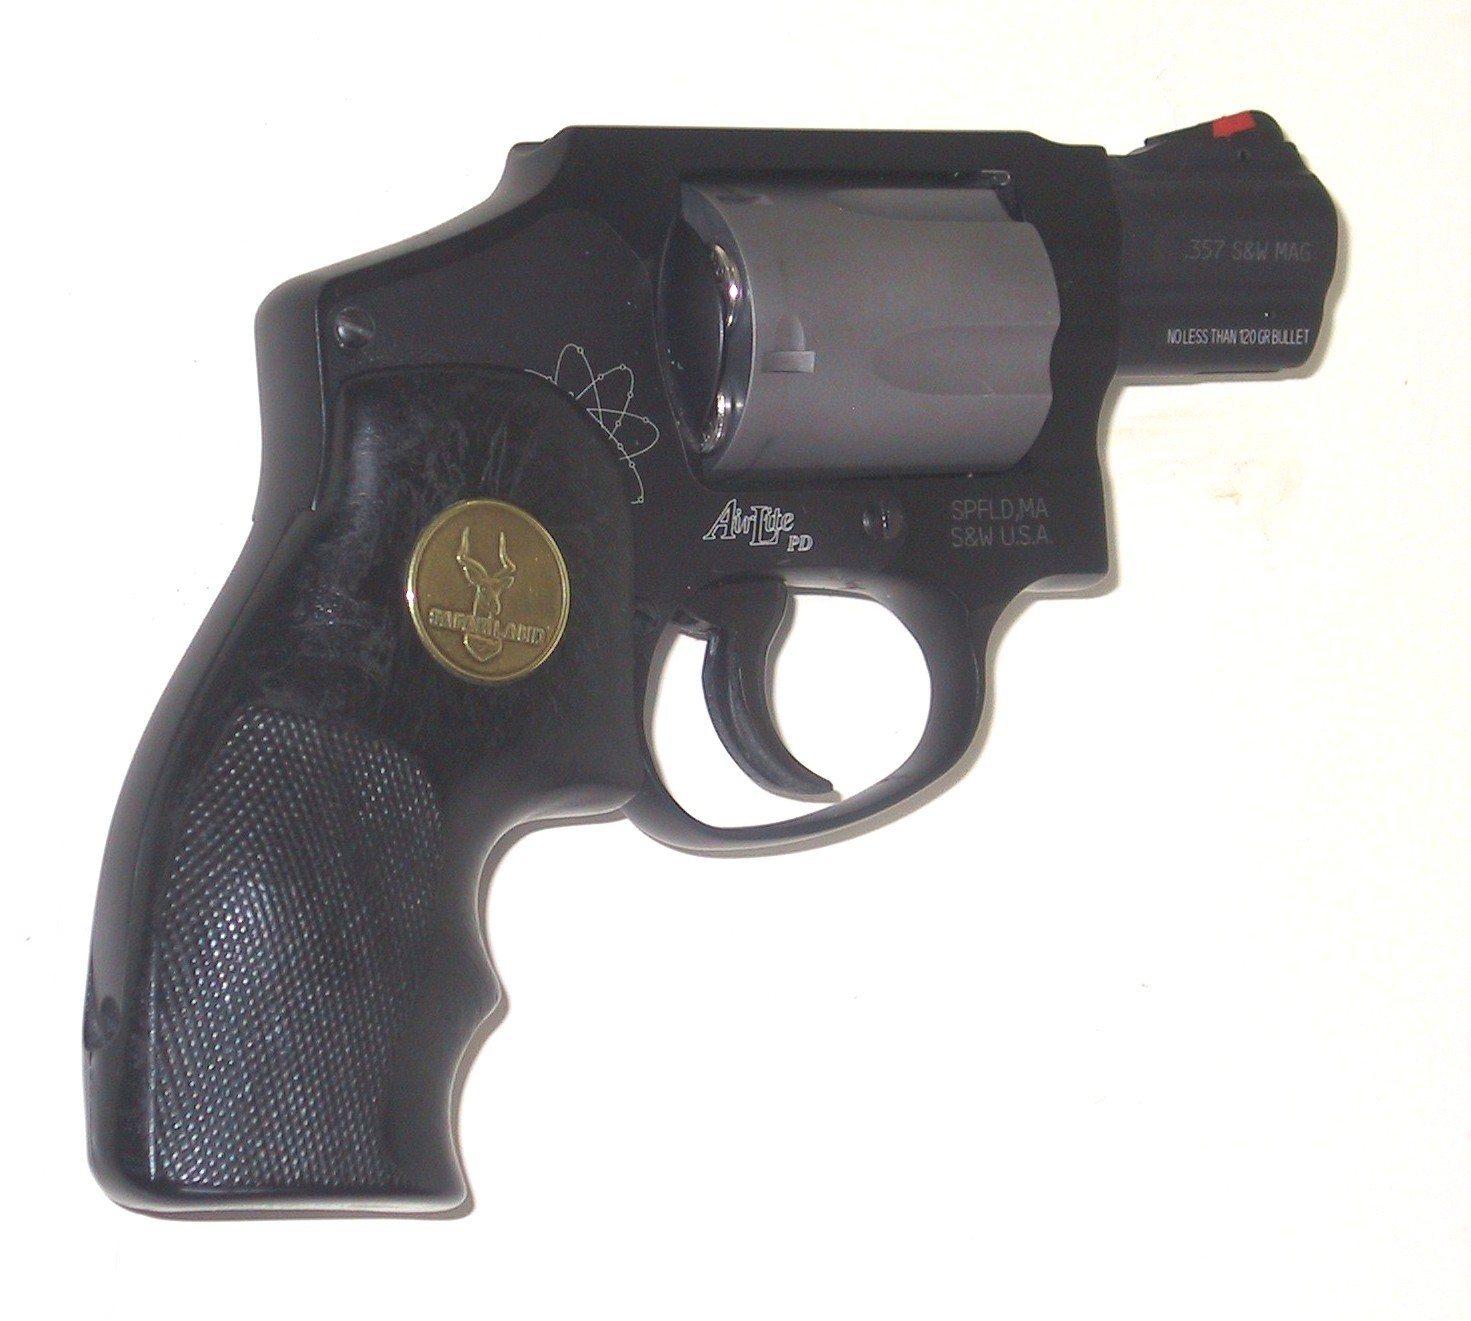 Just picked up a S&W 642 need some pics-340-pd-black-safariland-grips.jpg